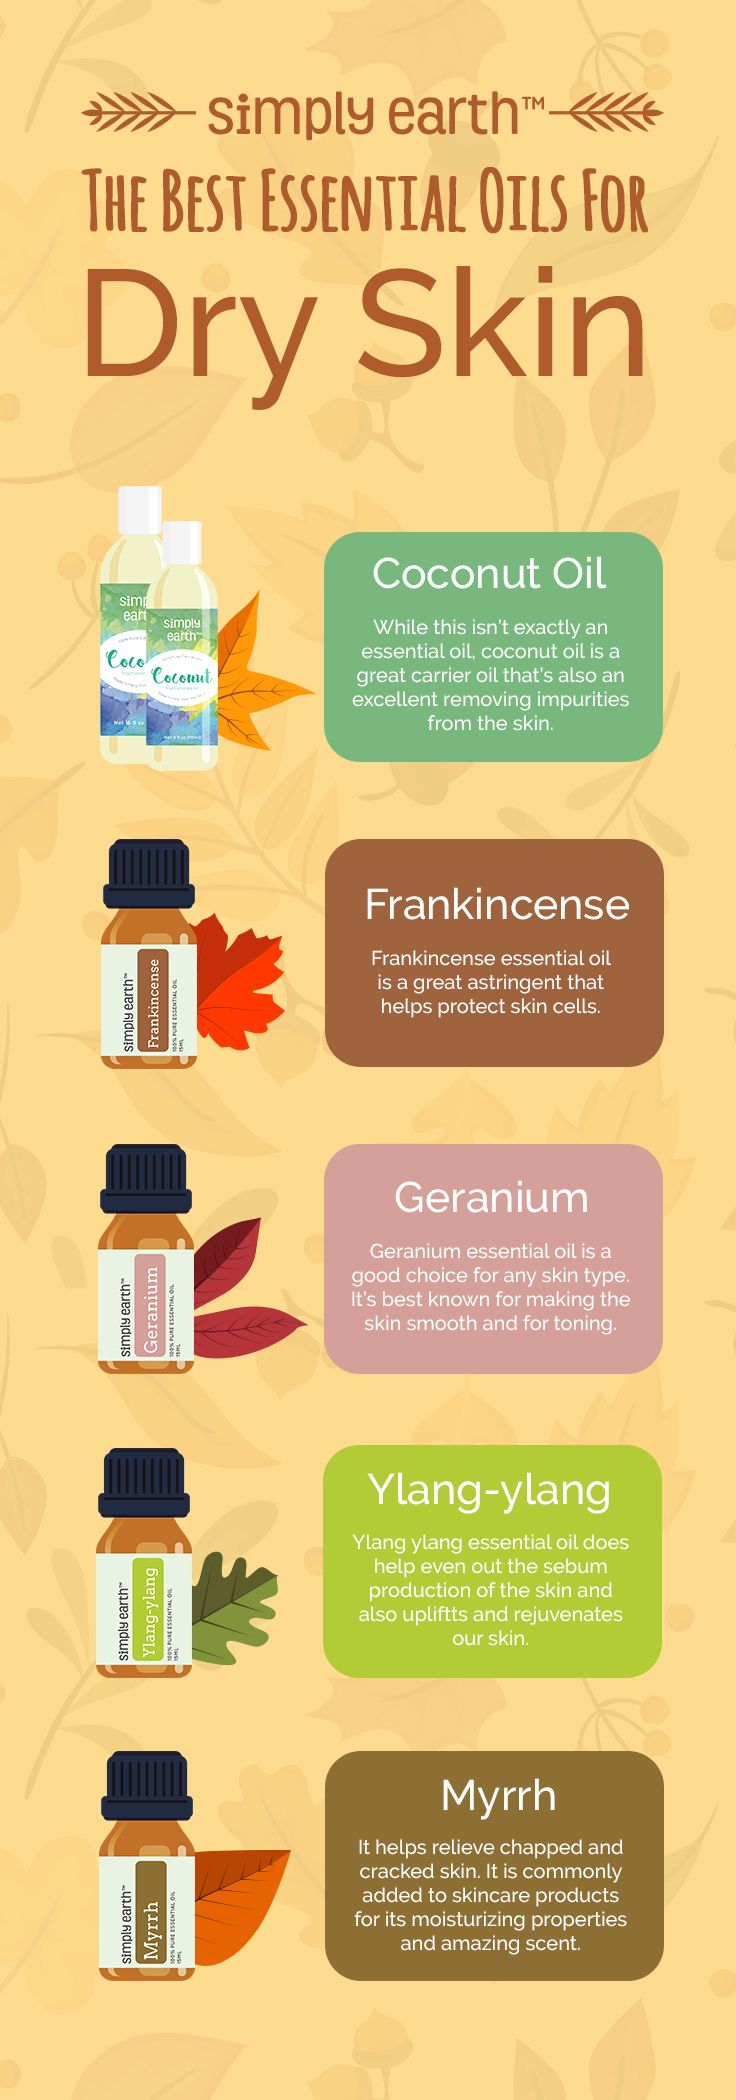 Dealing with dry skin can be difficult as you don't know what causes it. It often leads to itching, irritation and even cracking! Yikes! It can also cause premature wrinkles and fine lines on the face - something almost everyone is trying to avoid. Check out our blog to know the BEST 5 Essential Oils for Dry Skin!